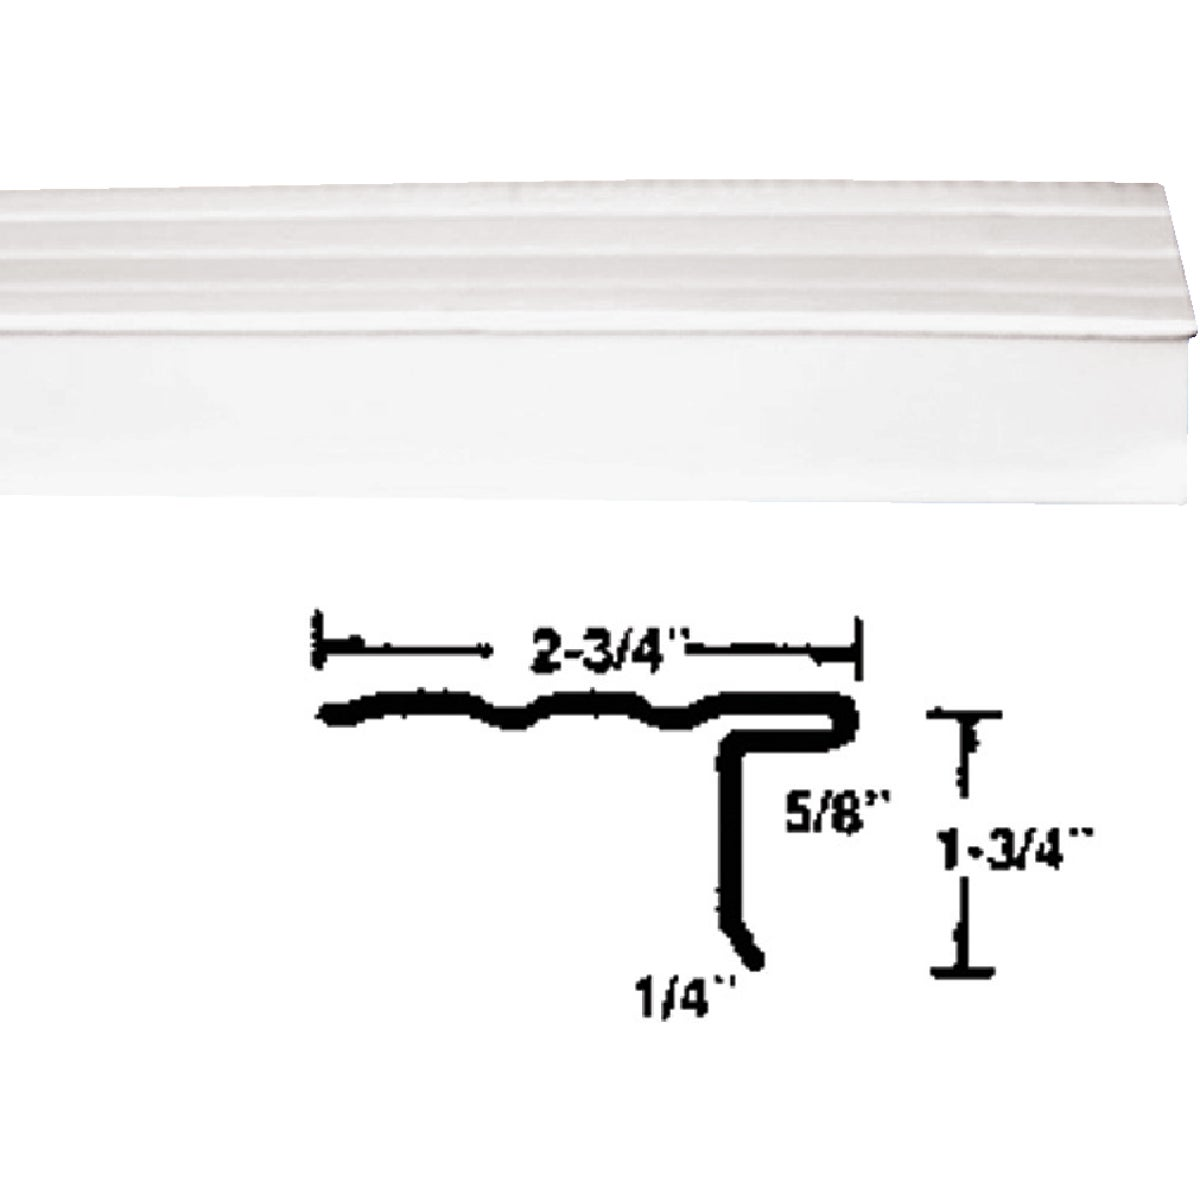 "6""STYLE LL WHT ROOF EDGE - 32690-AJ20 by Klauer Mfg Co"